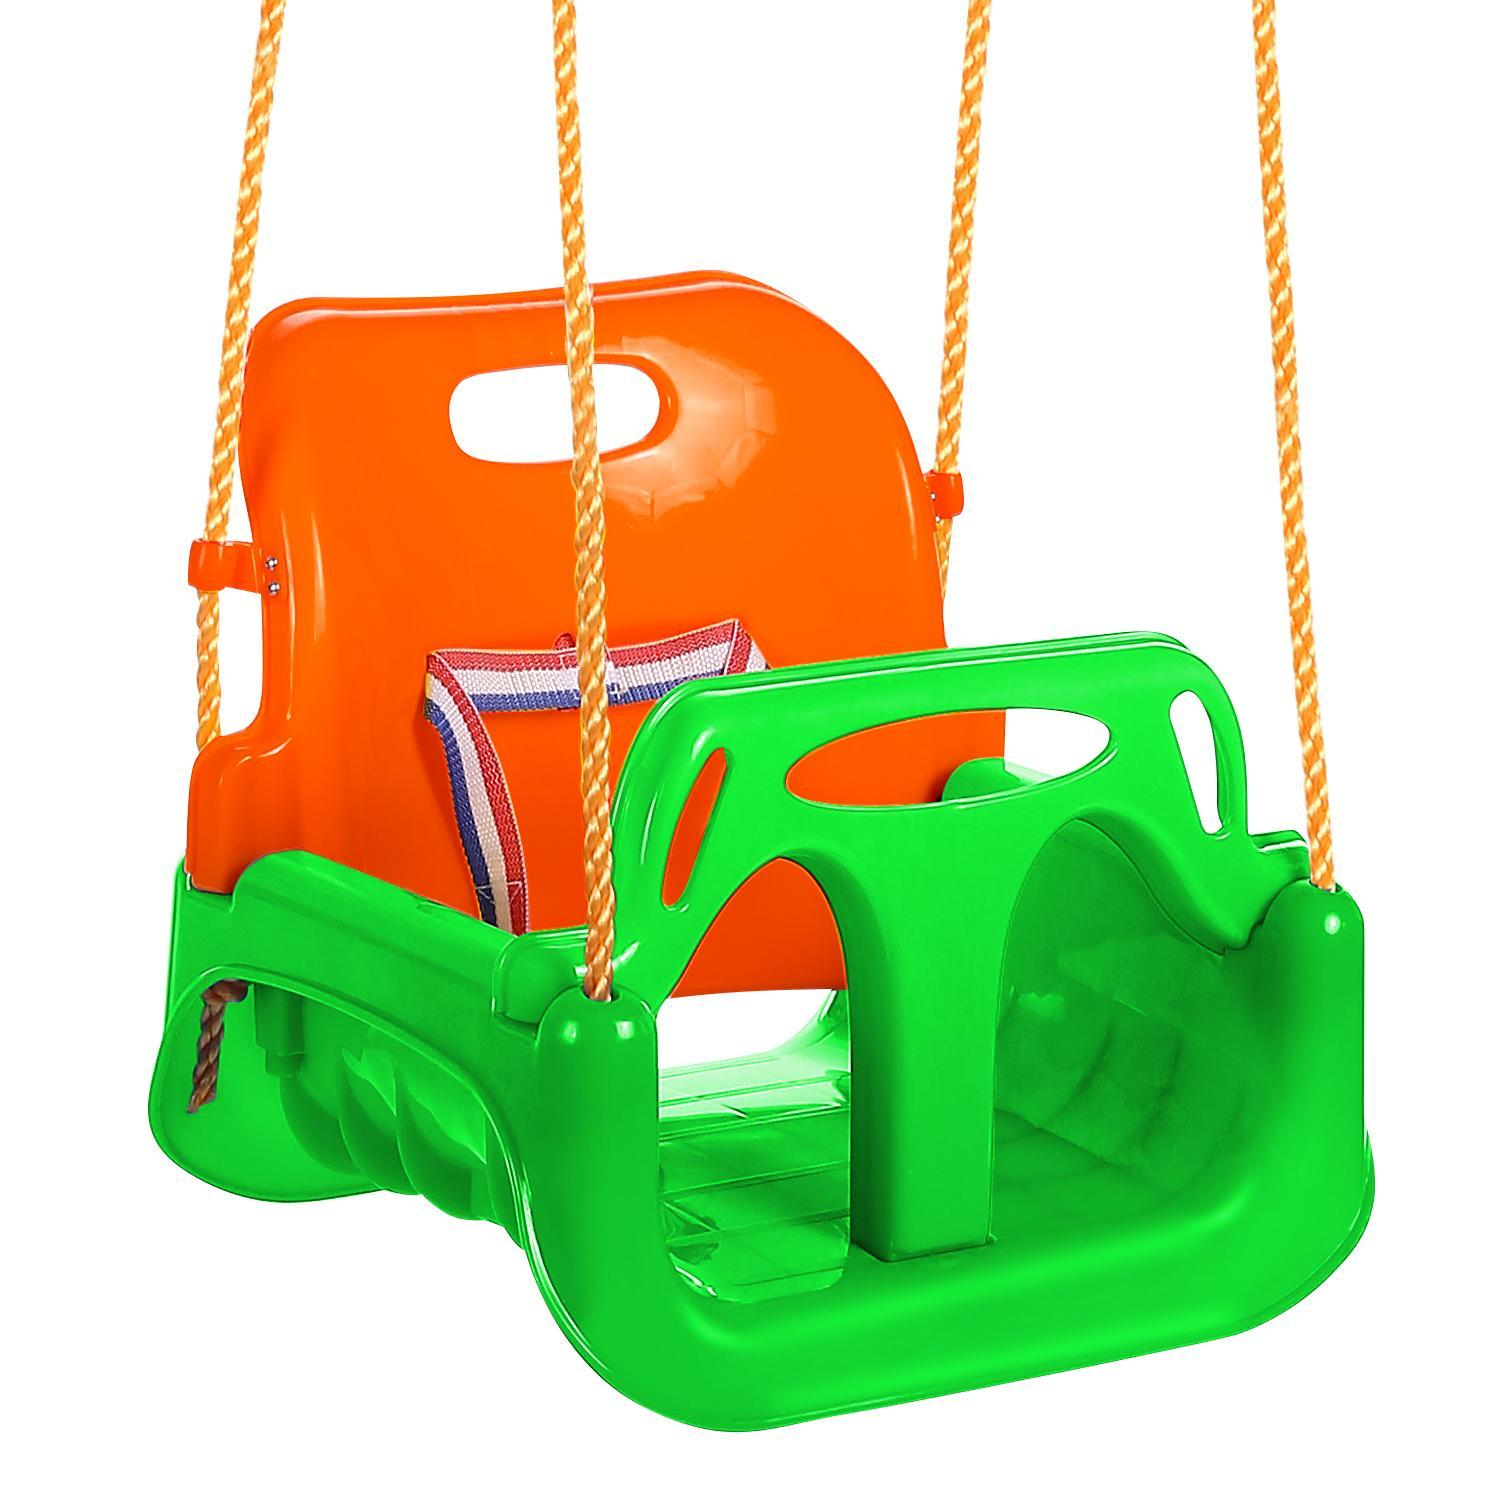 Bucket Swing Seat 3-in-1 T-Bar Indoor and Outdoor Safe and Secure Swing Set Playing for Fun Perfect for Infants,Babies and Toddlers(Blue/Pink/Green) BEDTS